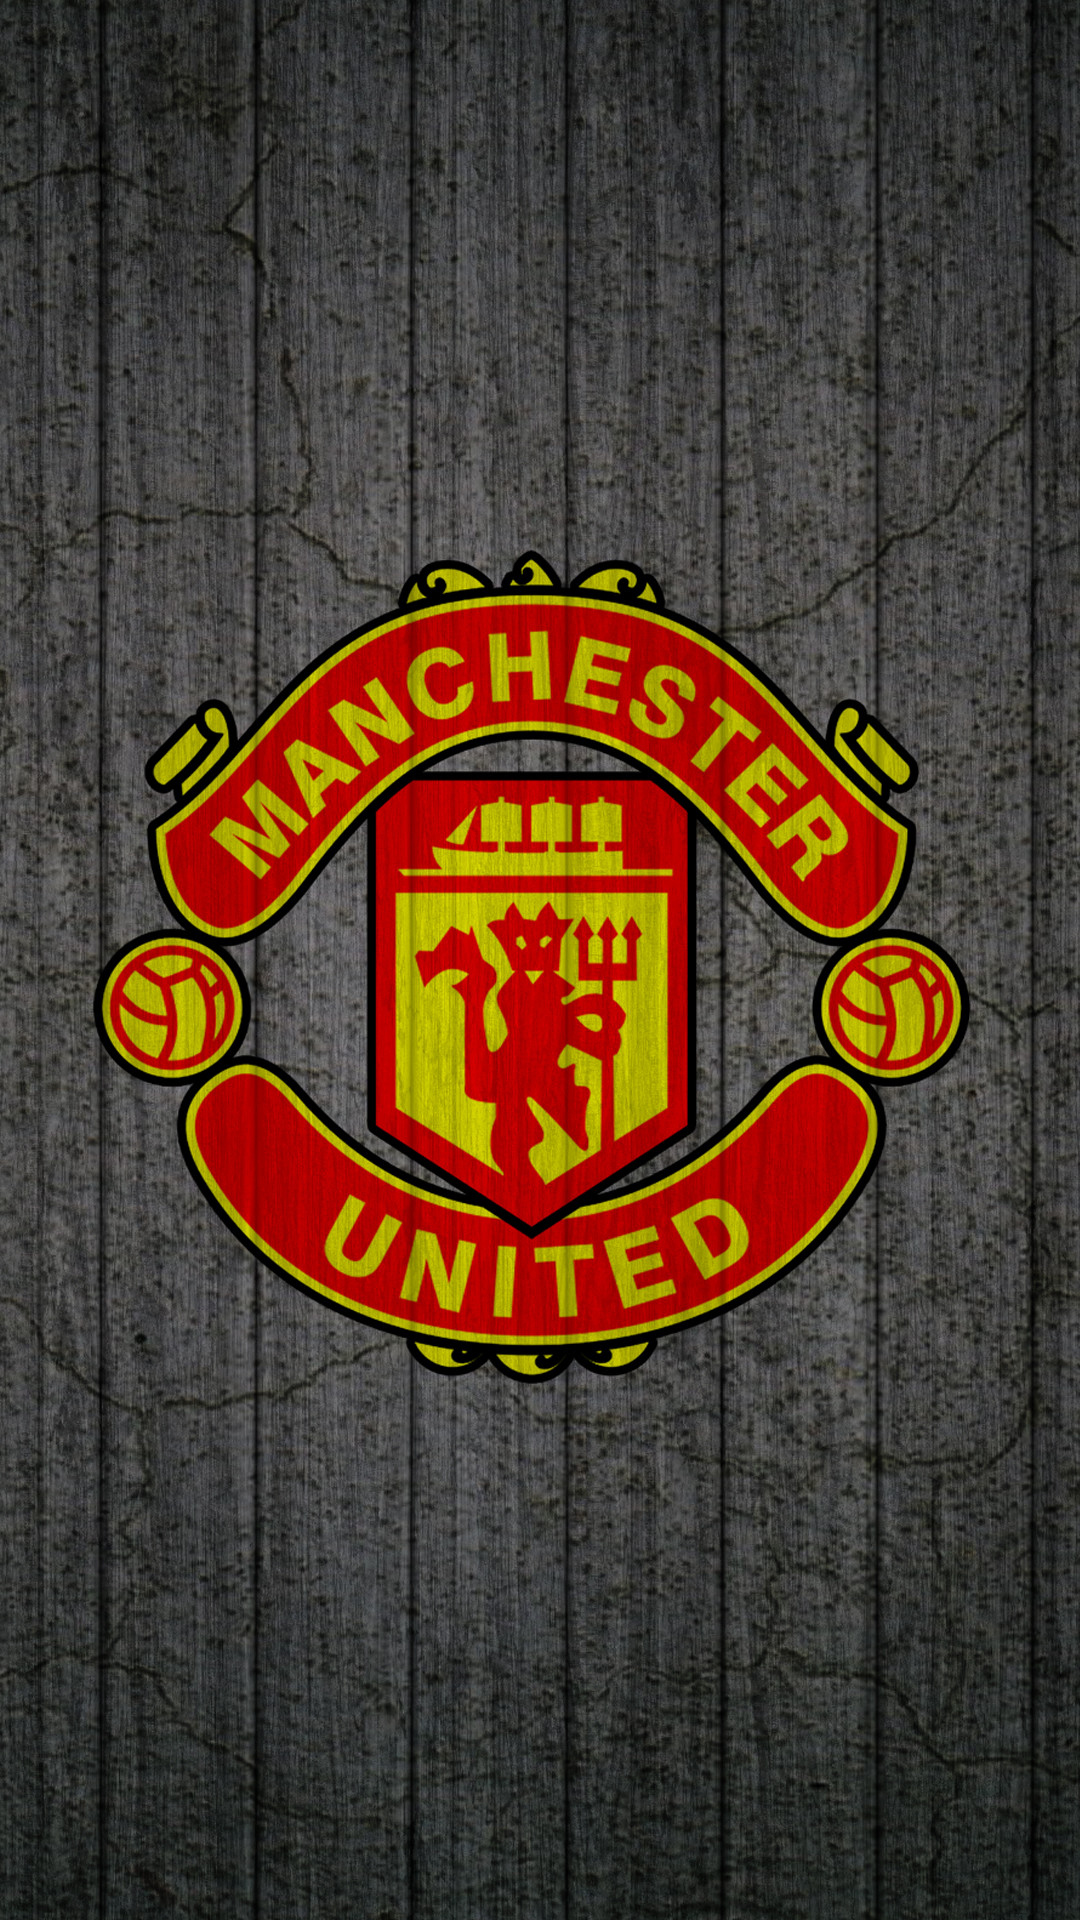 1080x1920 Apple iPhone 6 Plus HD Wallpaper – Manchester United Logo | HD Wallpaper  Download for Desktop